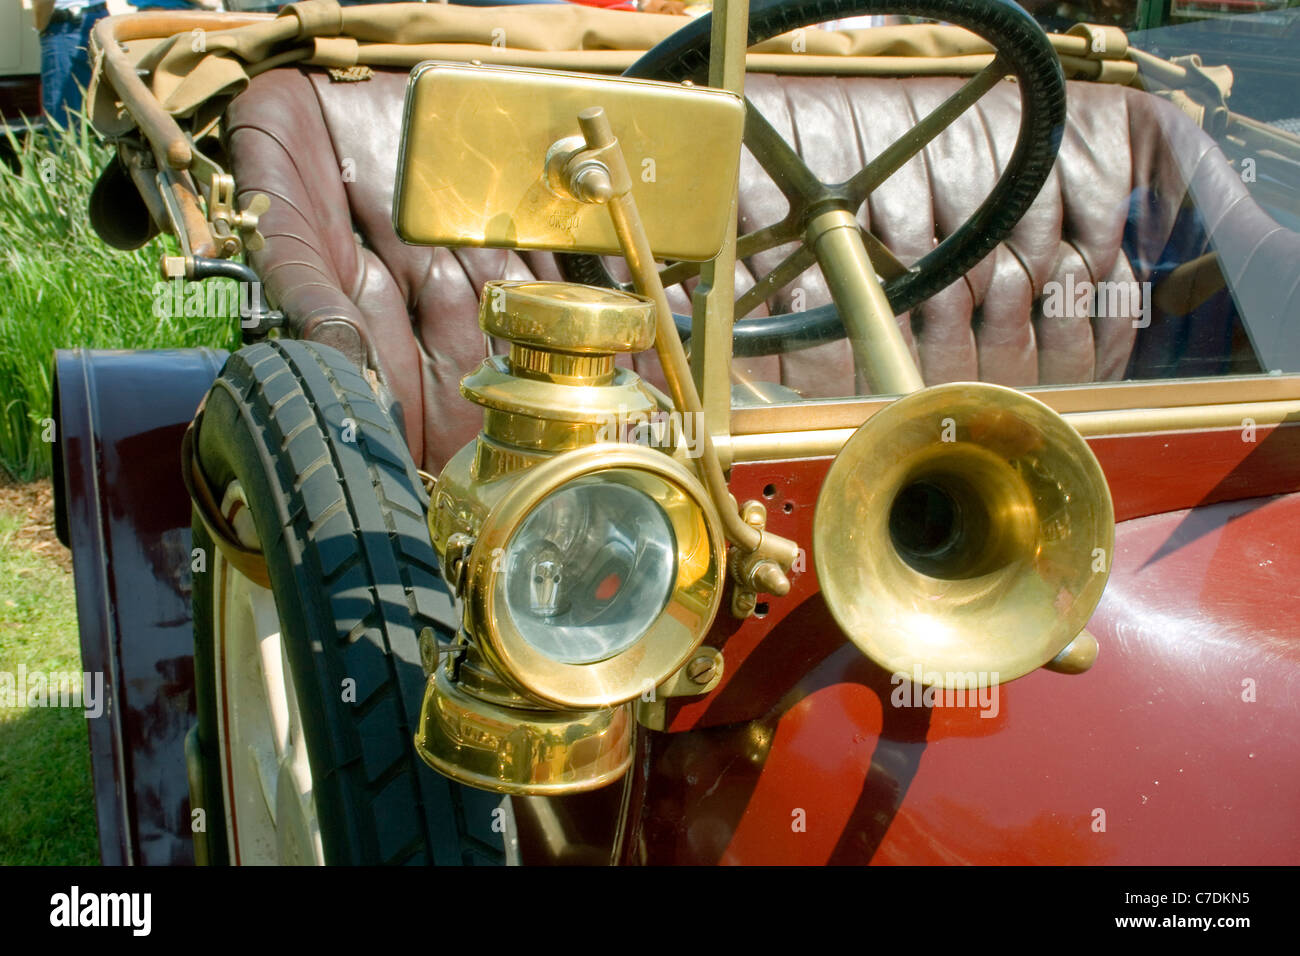 detail of vintage car with lamp and horn - Stock Image